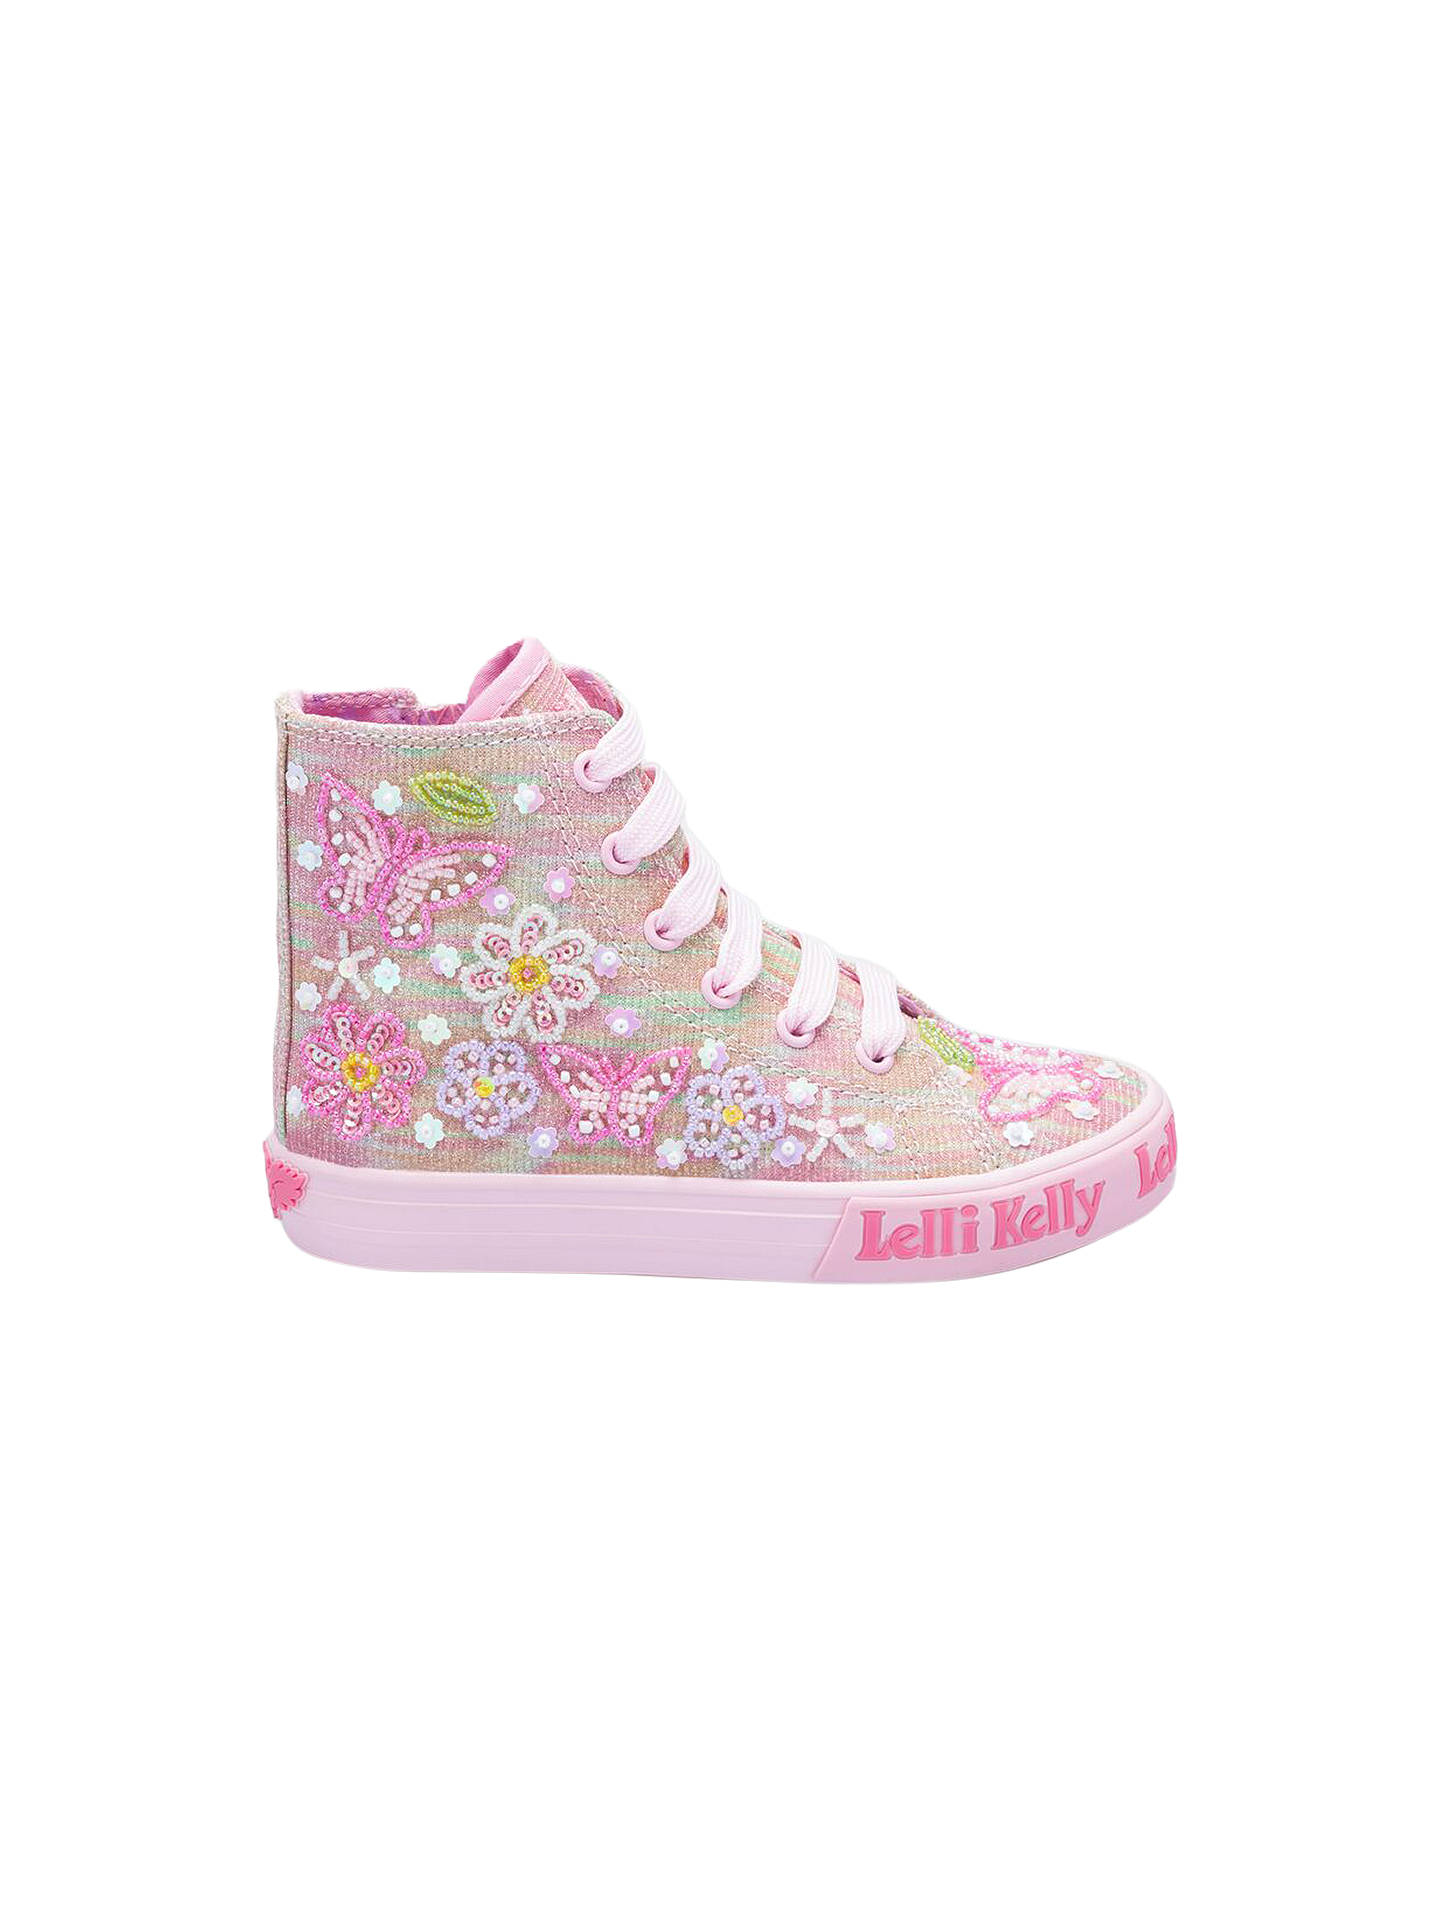 4a18c594c82c0 Buy Lelli Kelly Children's Shining Butterfly High Top Trainers, Pink, 26  Online at johnlewis ...